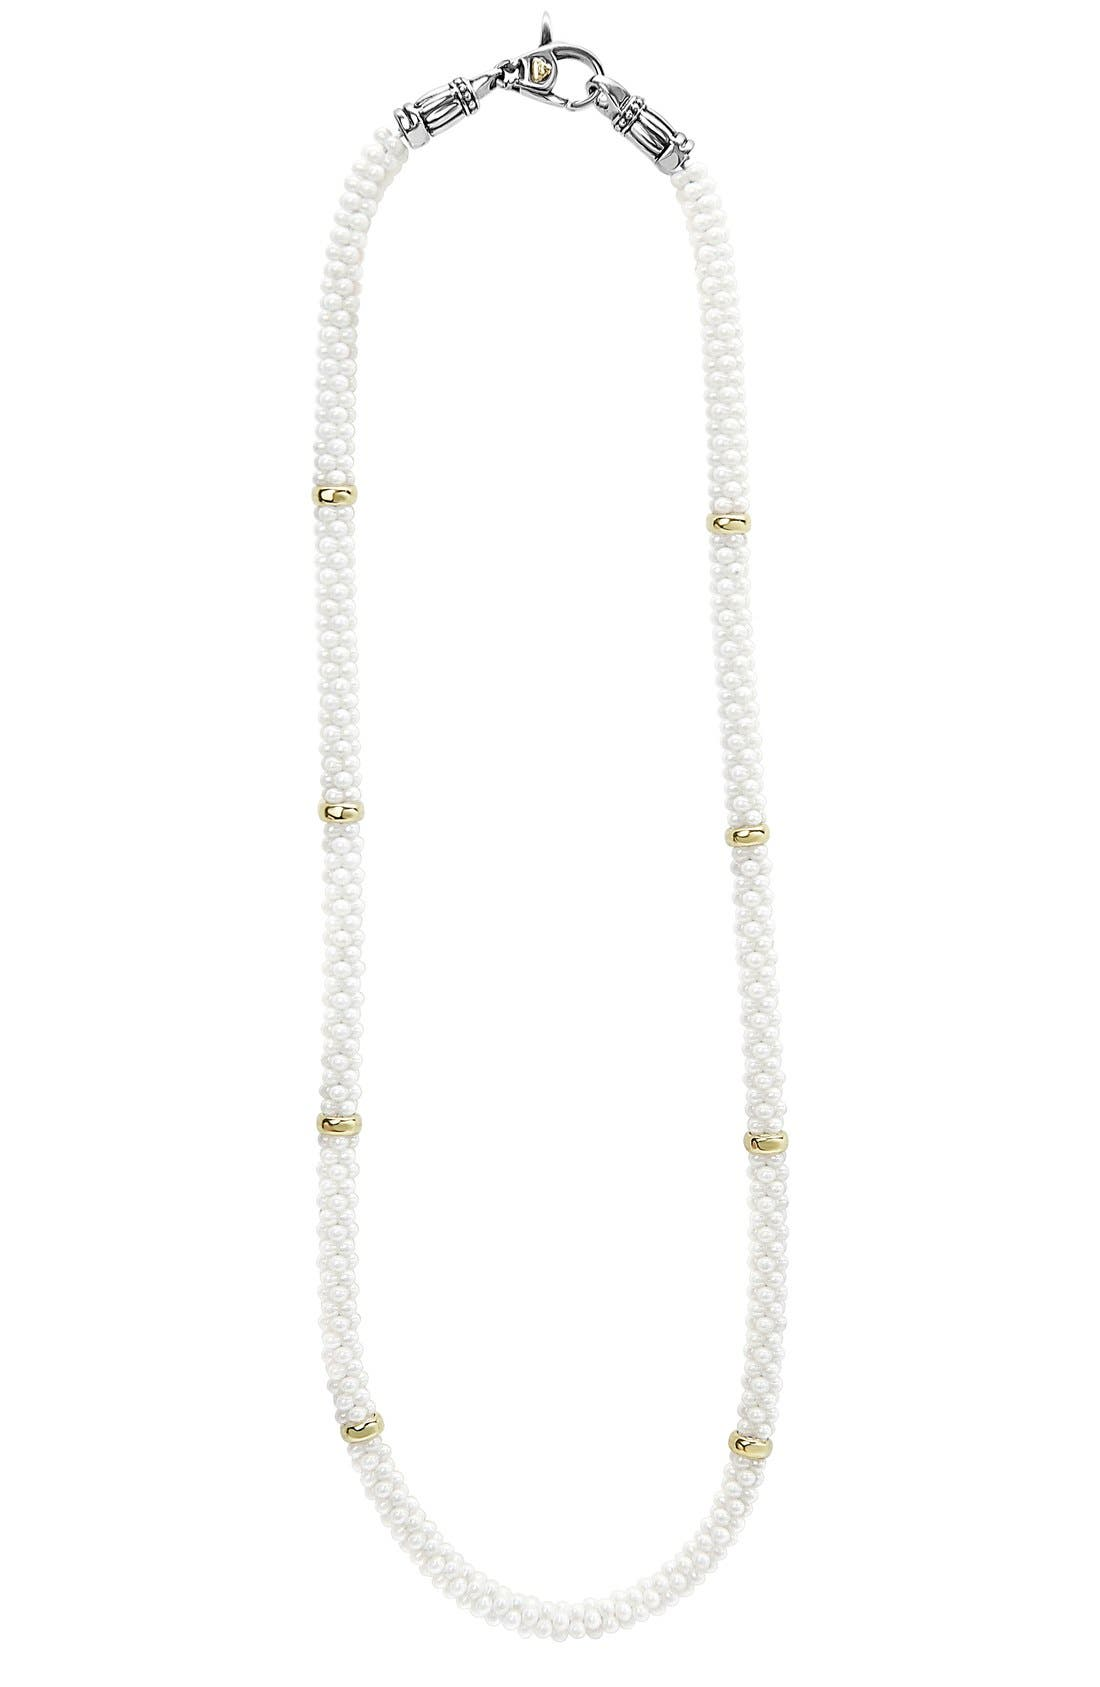 Main Image - LAGOS 'White Caviar' 5mm Beaded Station Necklace